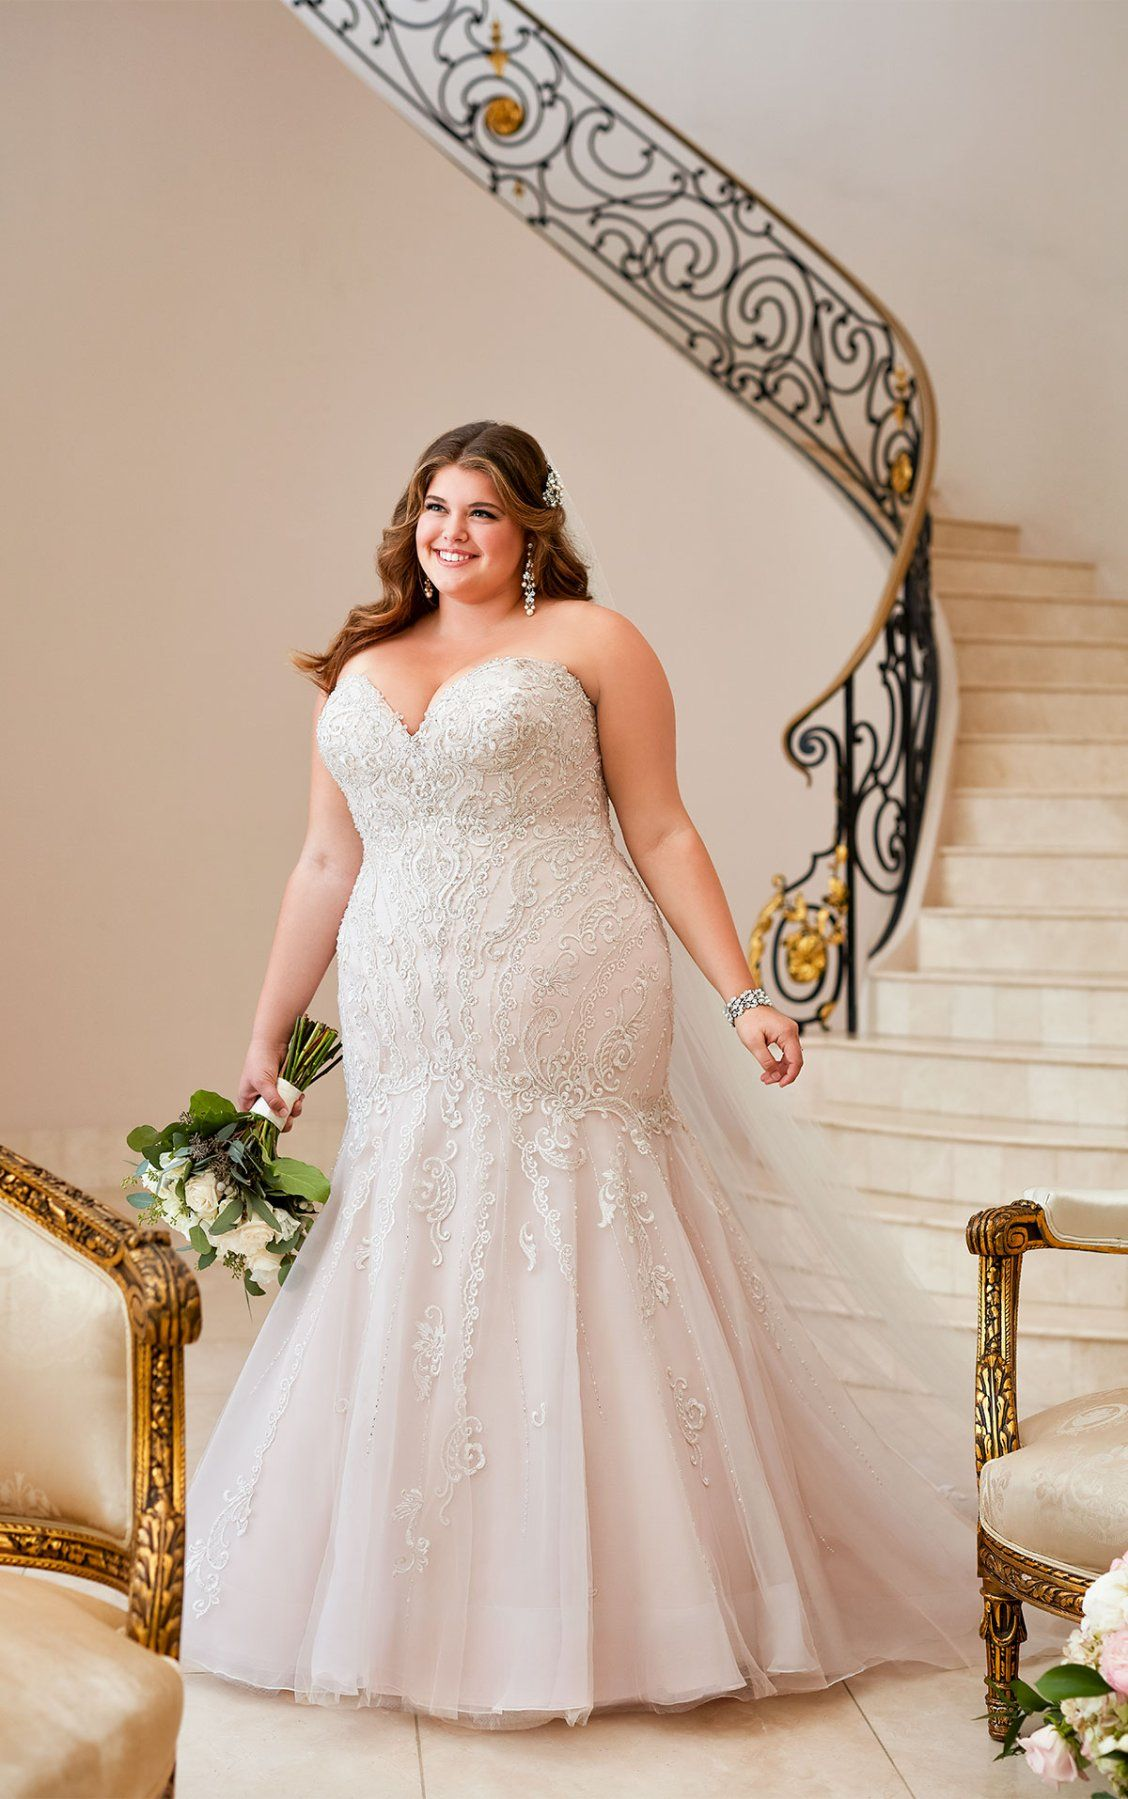 Mermaid Wedding Dress with Glamorous Lace | Plus wedding dresses, Wedding dress trends, Plus size wedding gowns